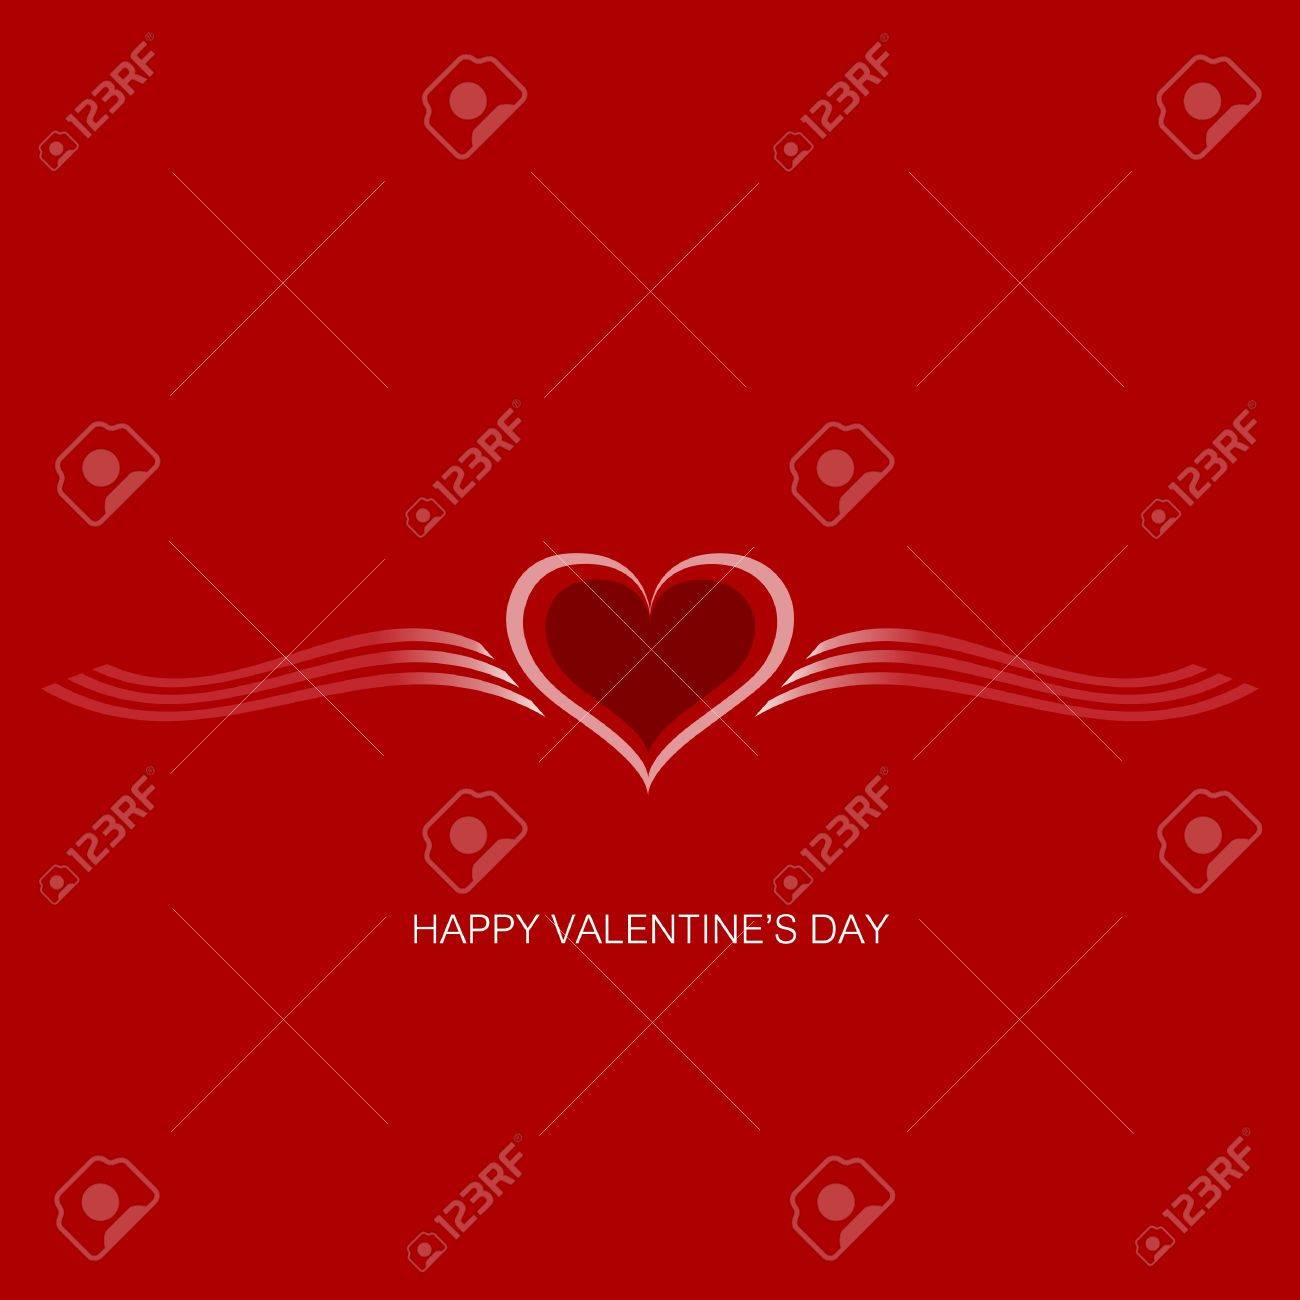 Valentine Gift card  Valentine s Day  background Stock Vector - 17448987